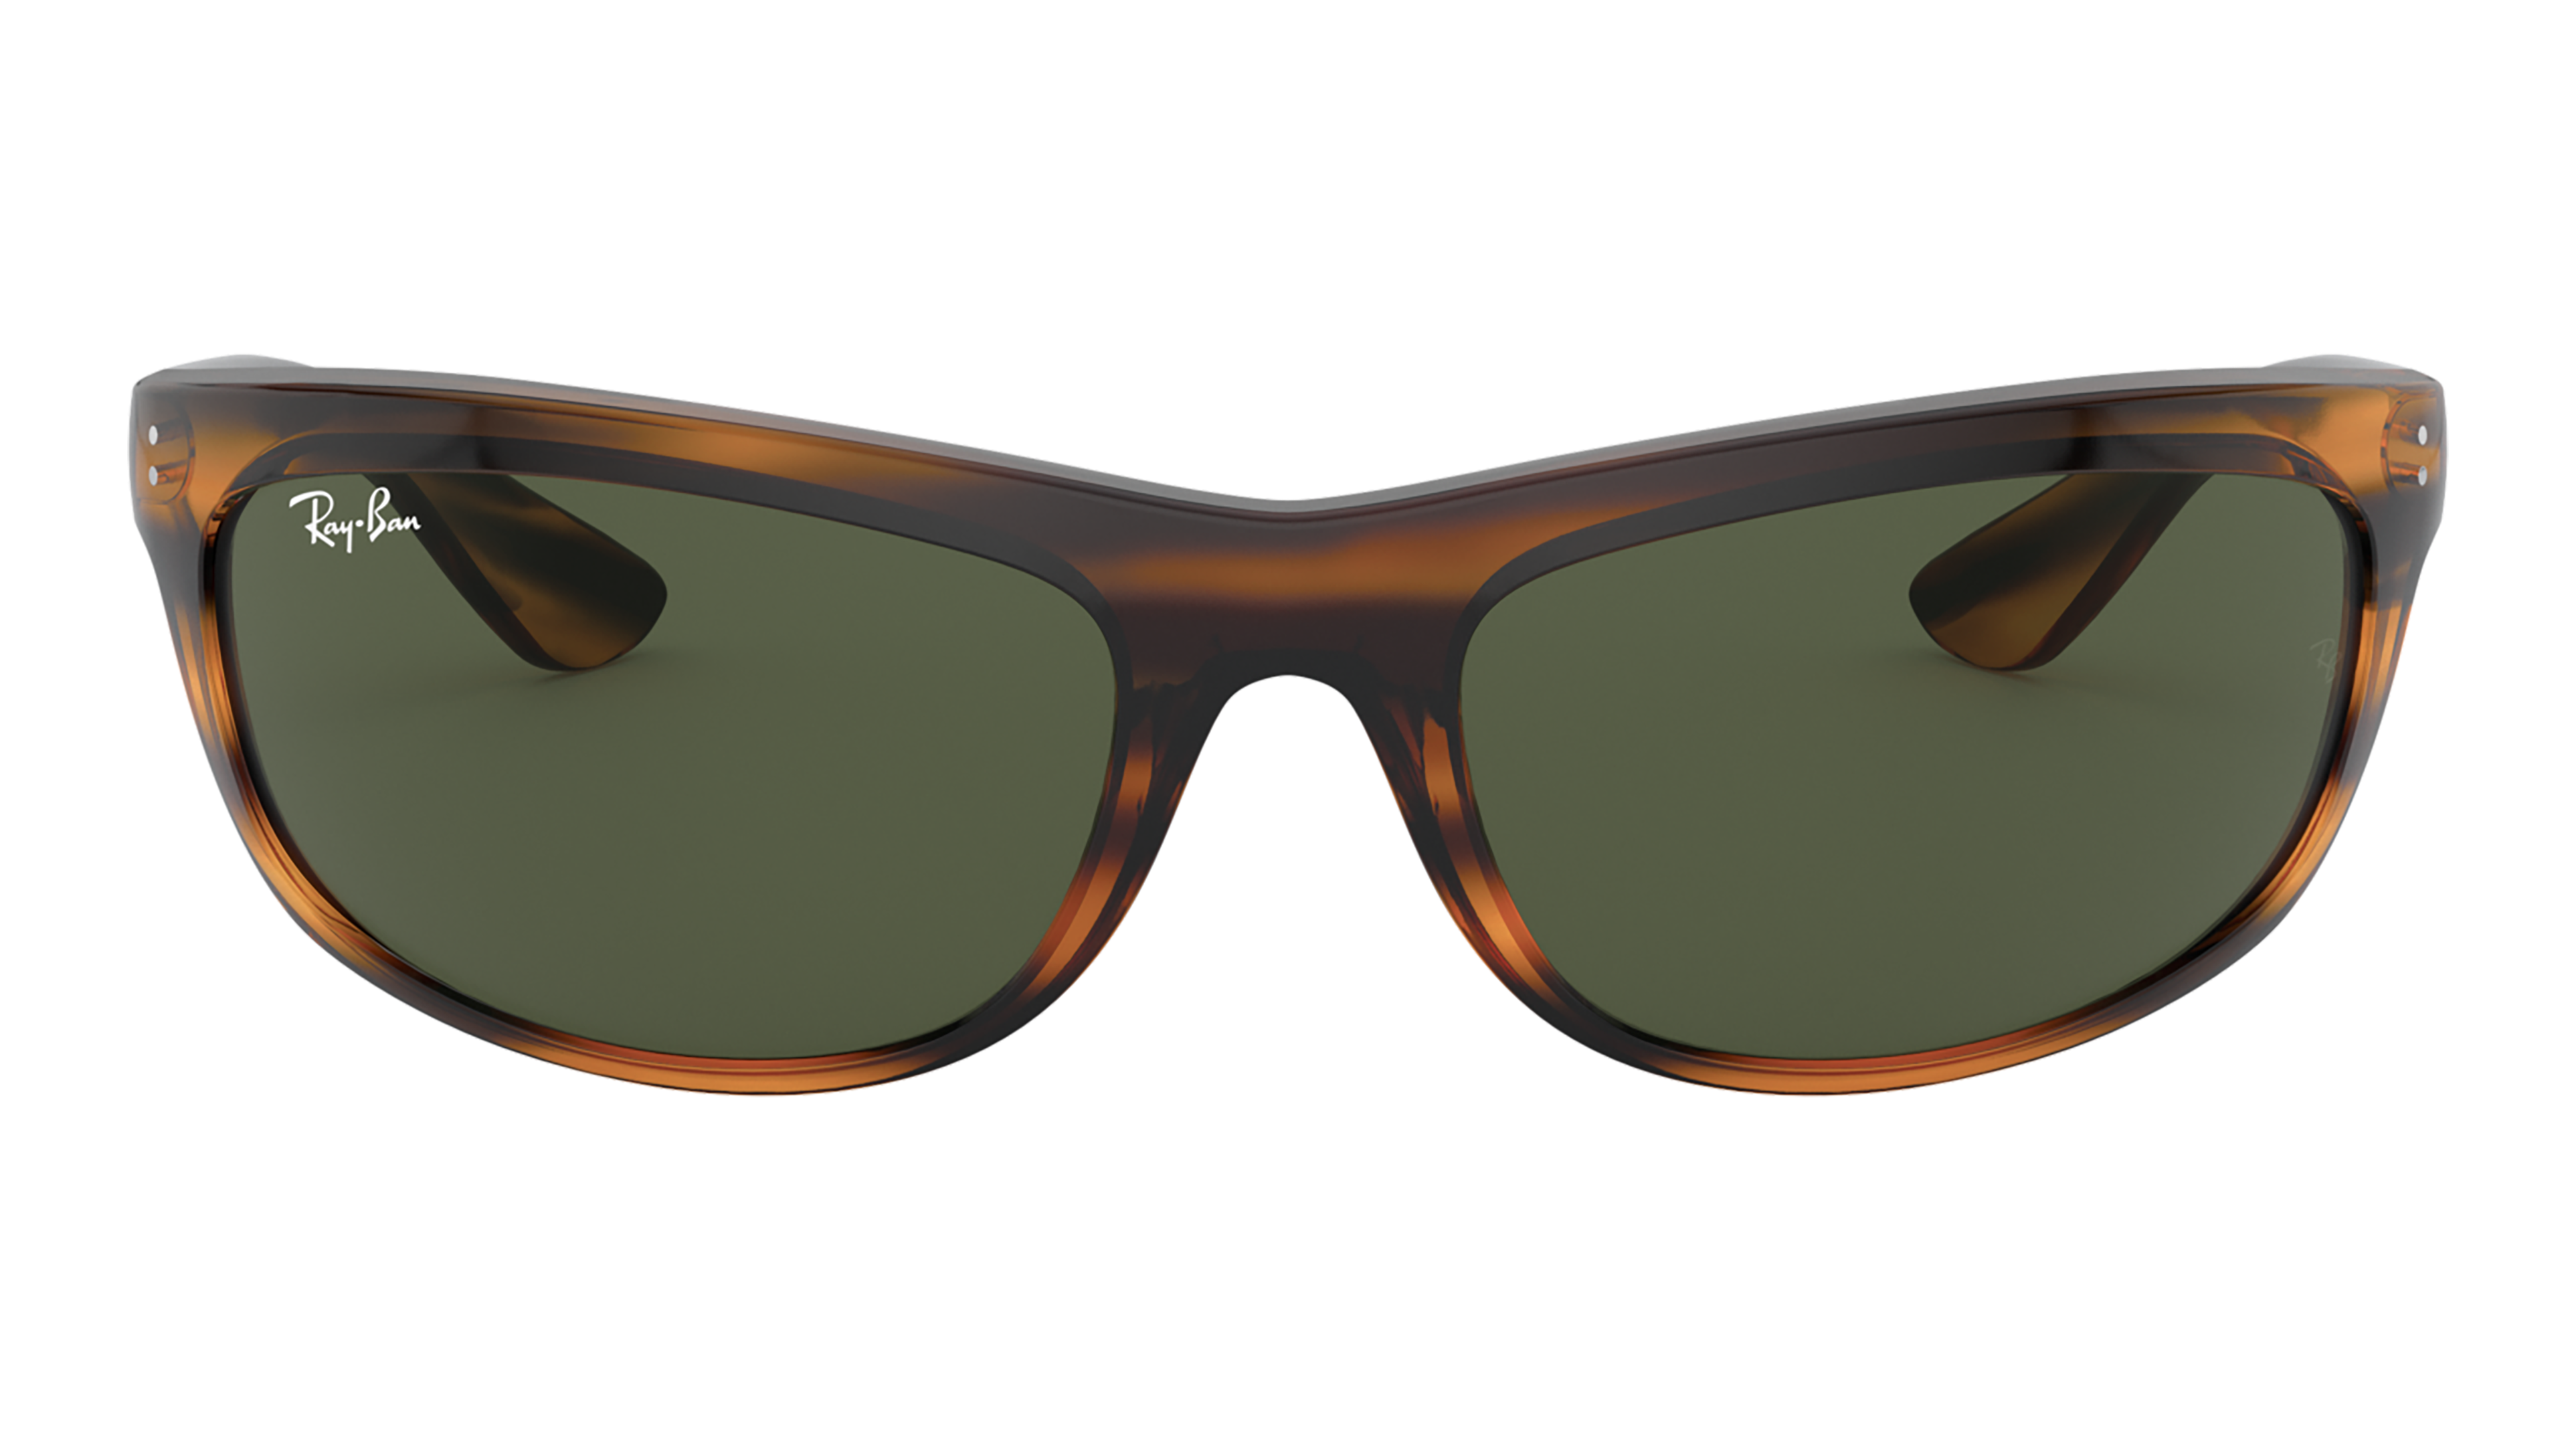 Front Ray-Ban Ray-Ban 0RB4089 820/31 61/19 Bruin/Groen